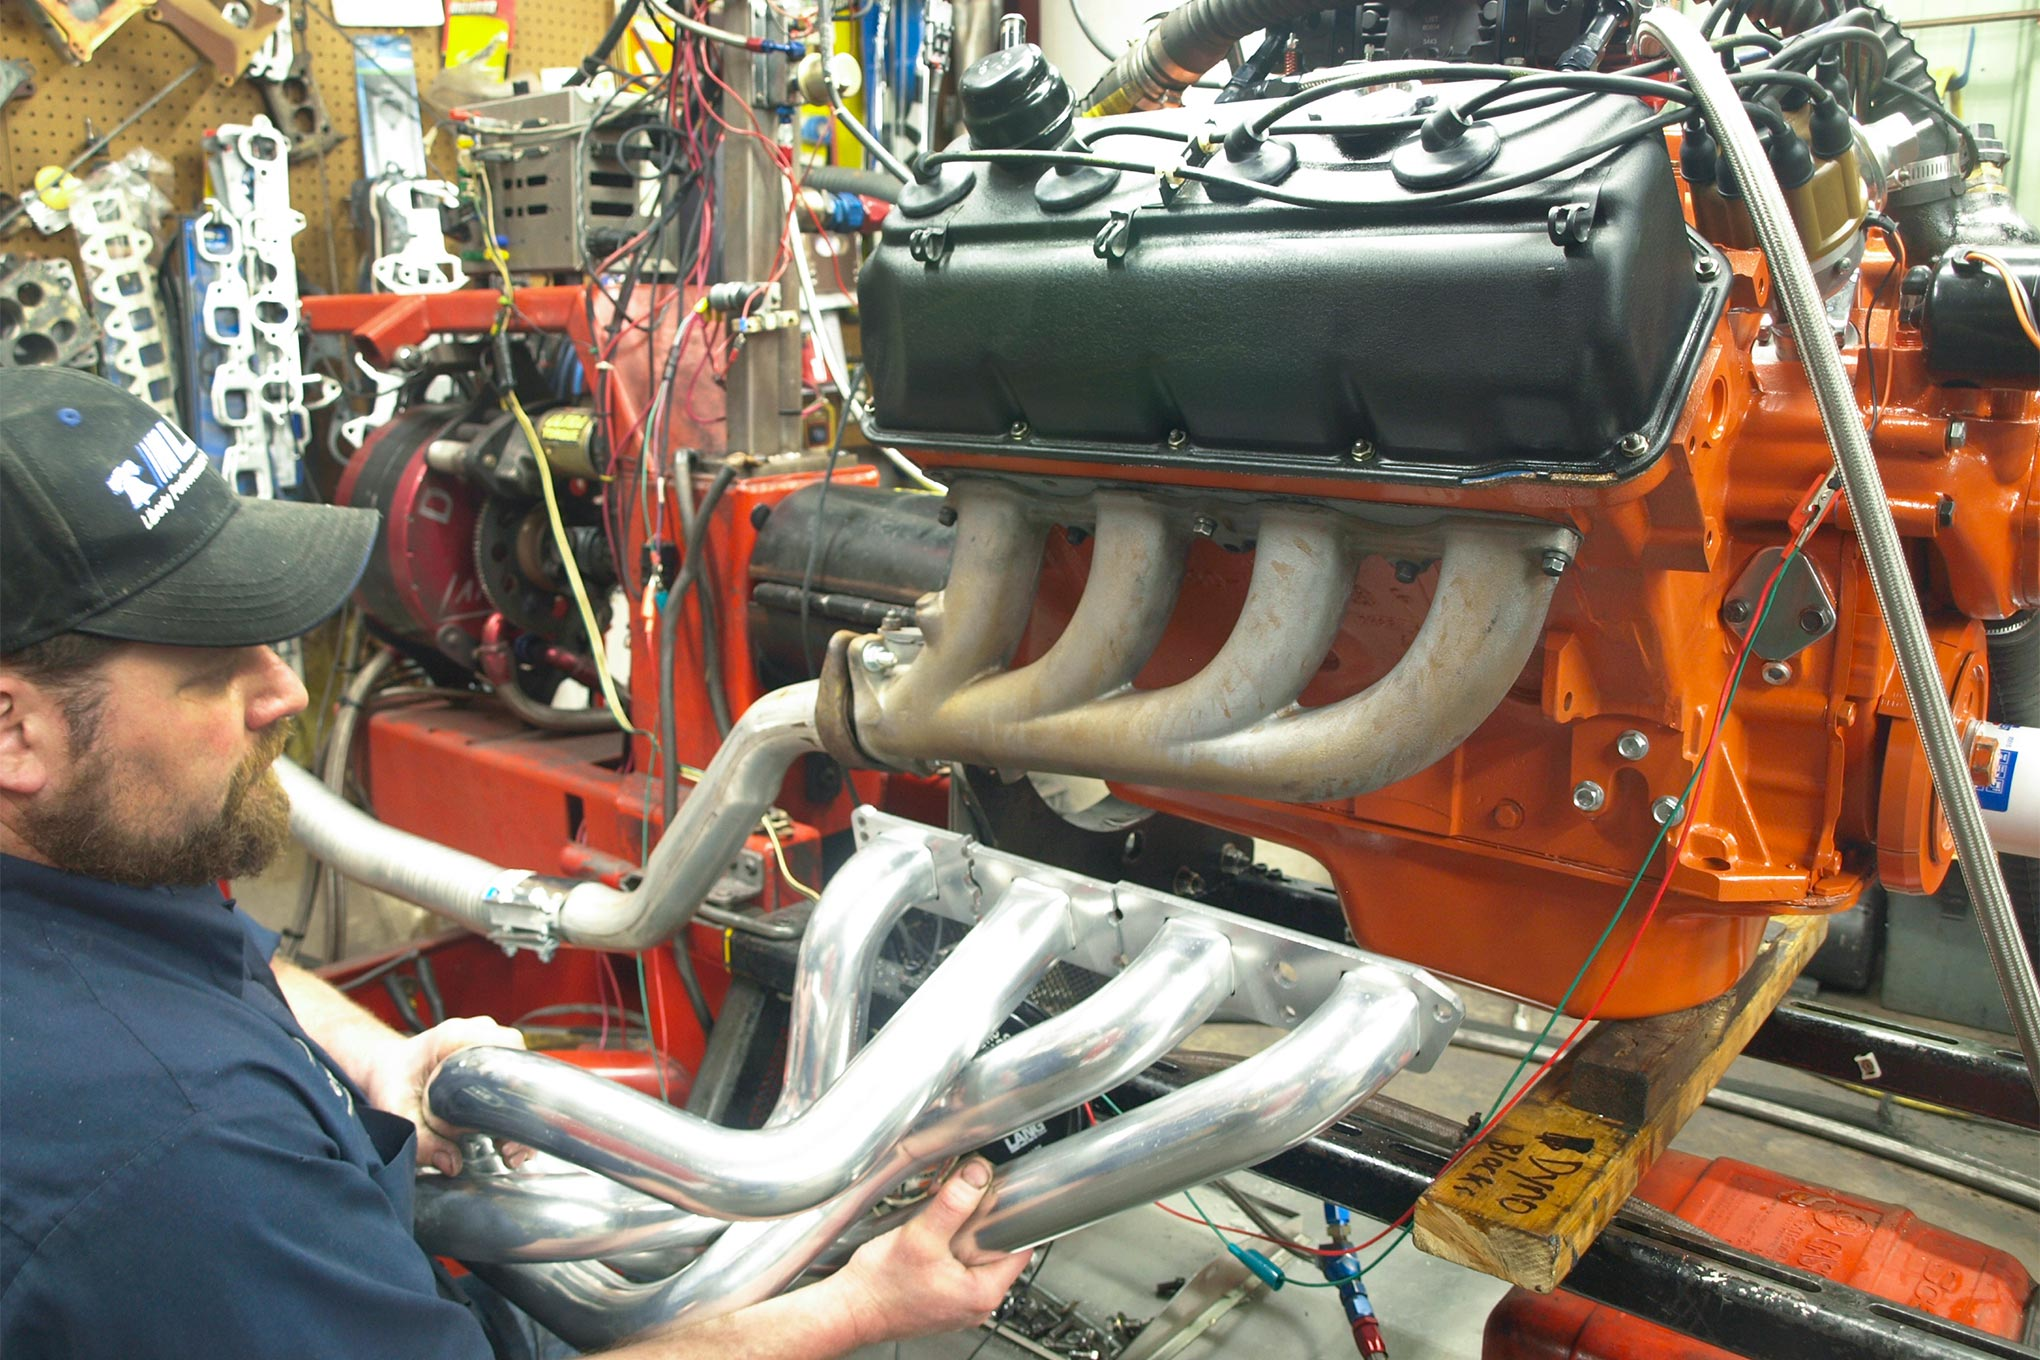 Next, Steve Chmura swapped the castings for a set of Hooker Super Competition headers. With 2.125-inch-diameter, 30-inch-long primary tubes and 3.5-inch collector outlets, they delivered 569.2 hp at 5,900 rpm and 544.5 lb-ft at 4,600 rpm. To offset a mild lean condition, the HP 850's jets were increased from 94/98 to 99/99.